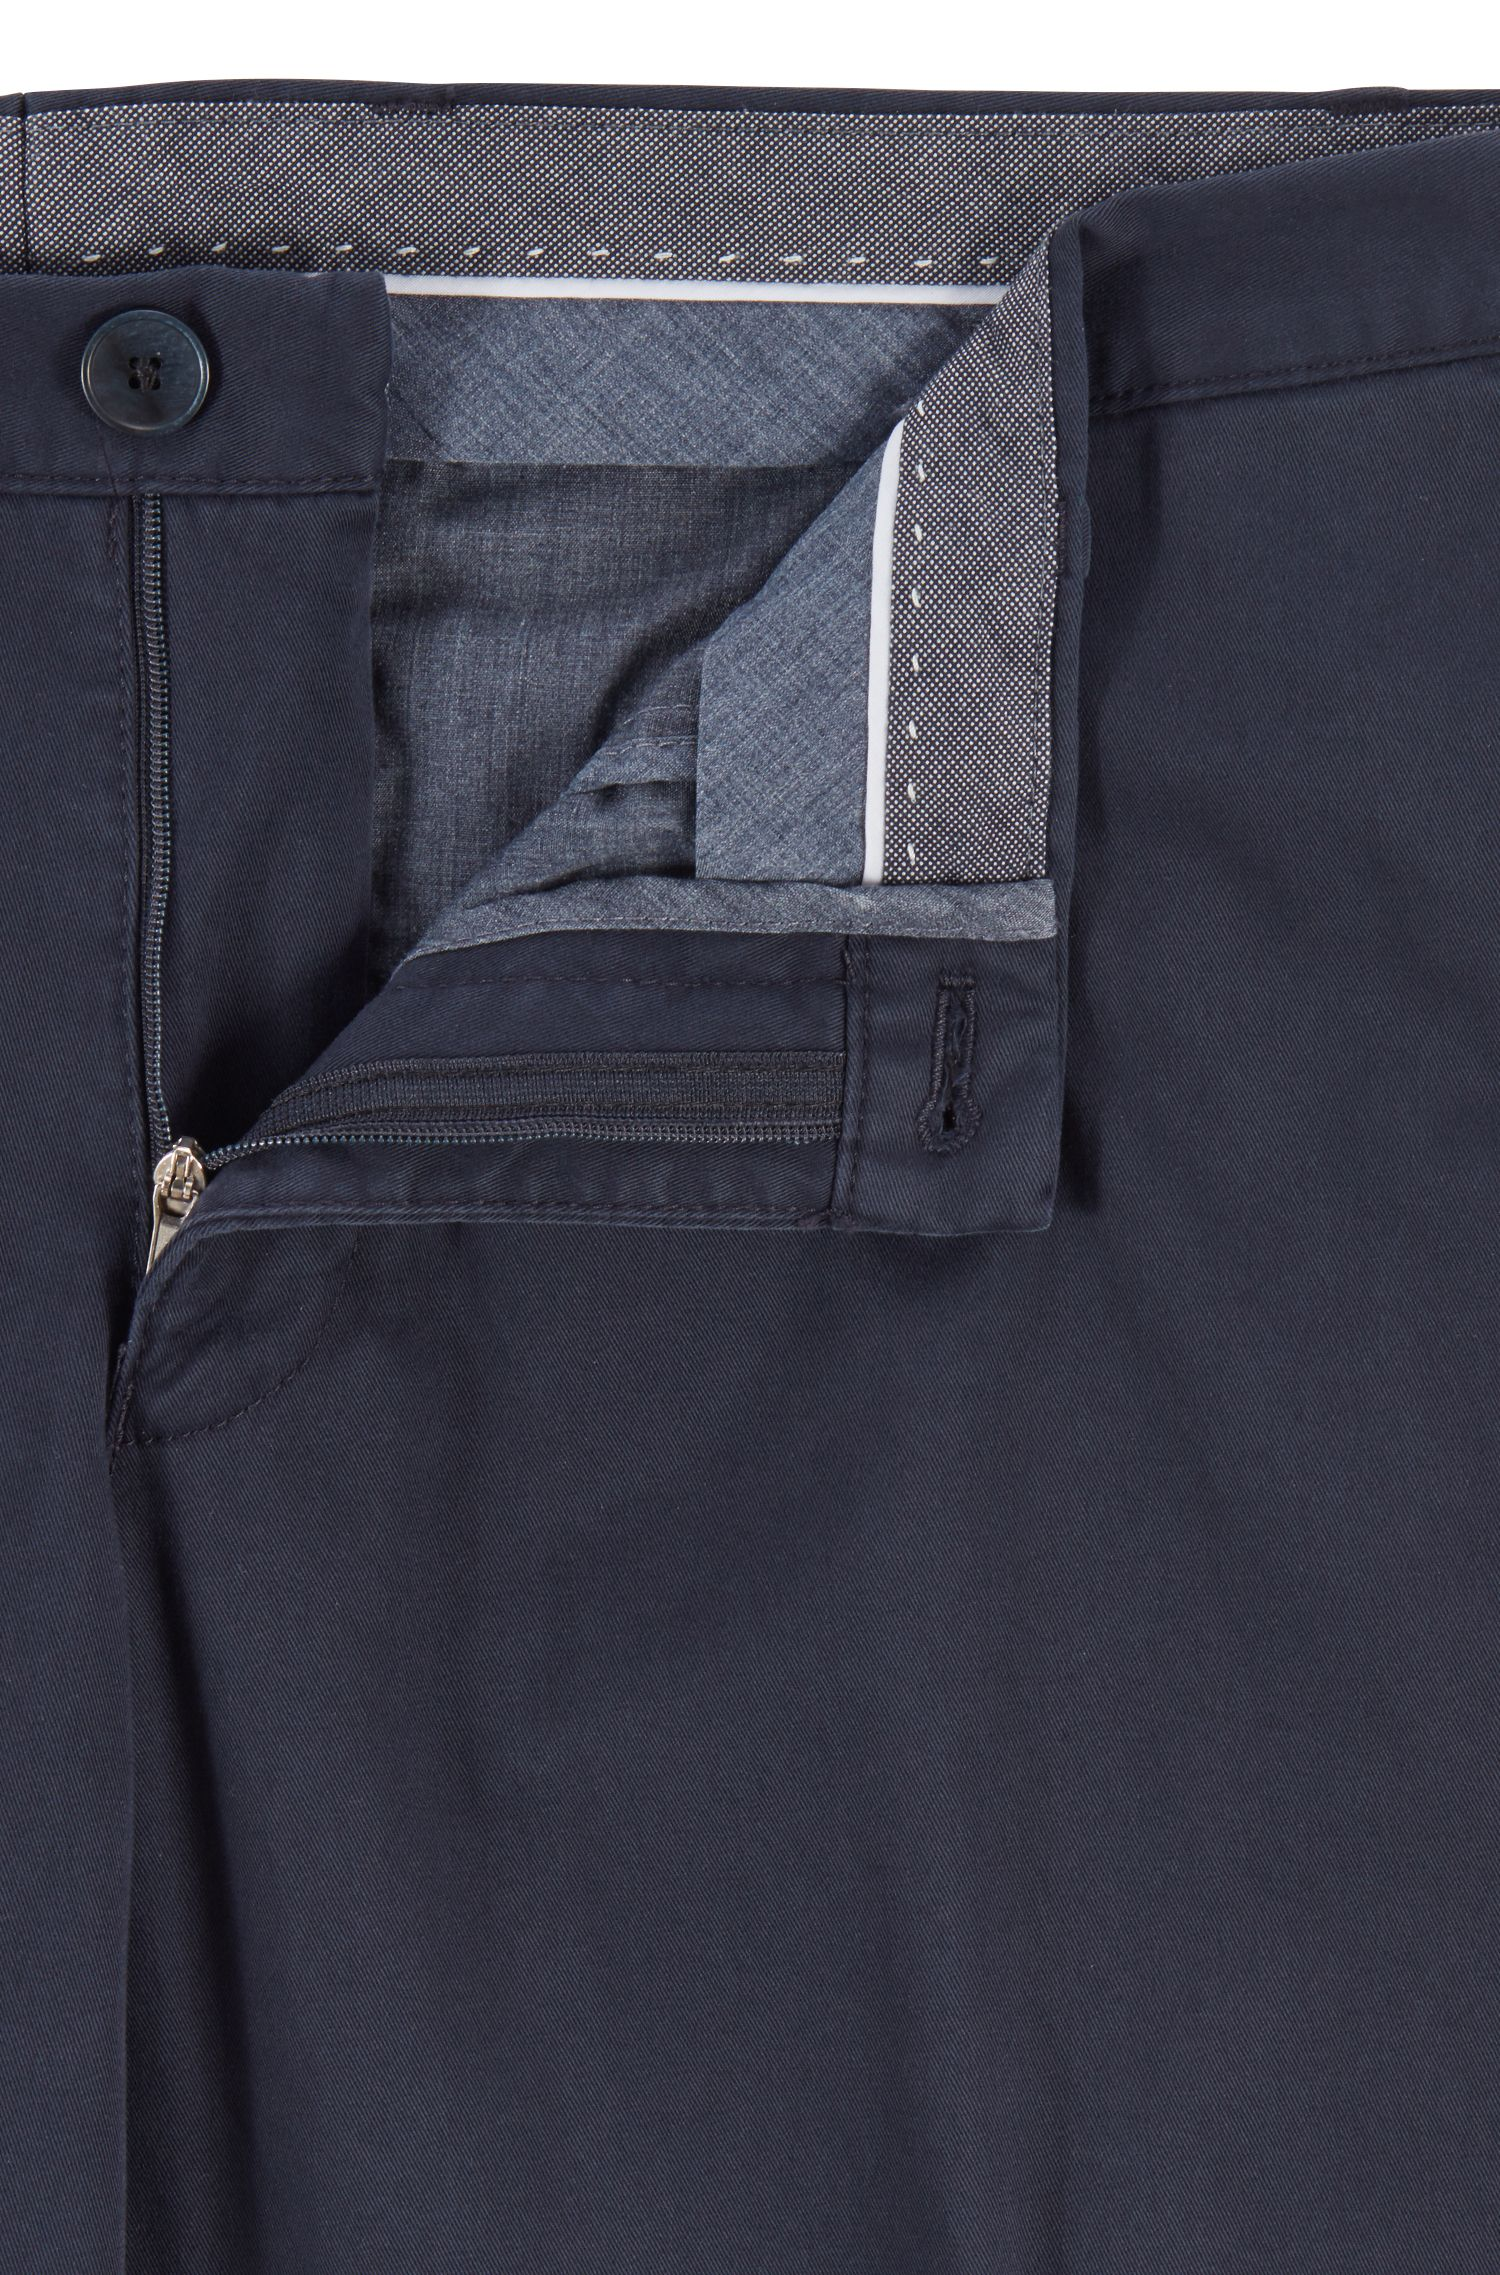 Hugo Boss - Slim-fit trousers in garment-dyed stretch cotton - 5